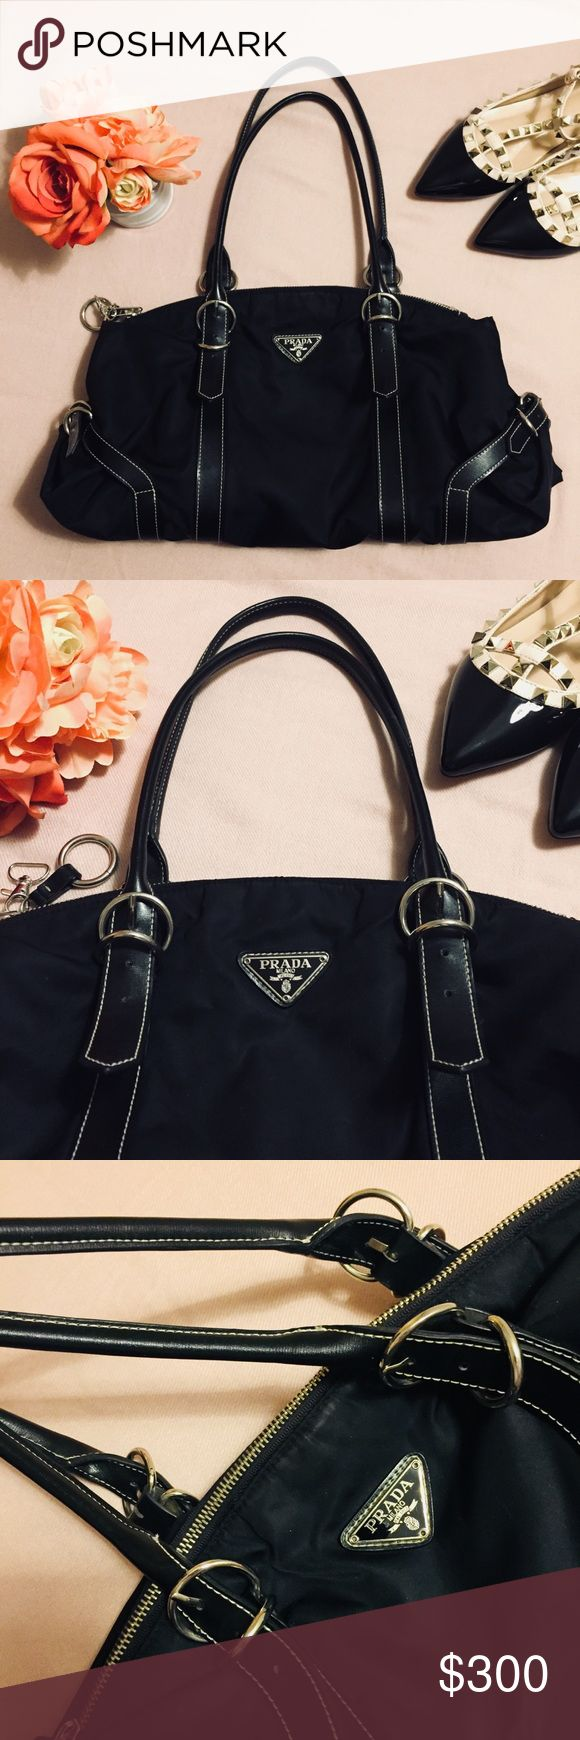 🚫SOLD via PPal🚫 AUTH PRADA TESSUTO NERO Prada Tessuto (Nylon) in Nero (Black). Silver hardware. Leather and body of the bag are in excellent condition. Interior and exterior are clean. No tears, cracks on leather, scuffs, rips or stains. 😍   Lost its authenticity card and it's original dustbag. I have a Prada dustbag for my other purse. A bit small for this but I can include it just let me know.❤️ Prada Bags Shoulder Bags